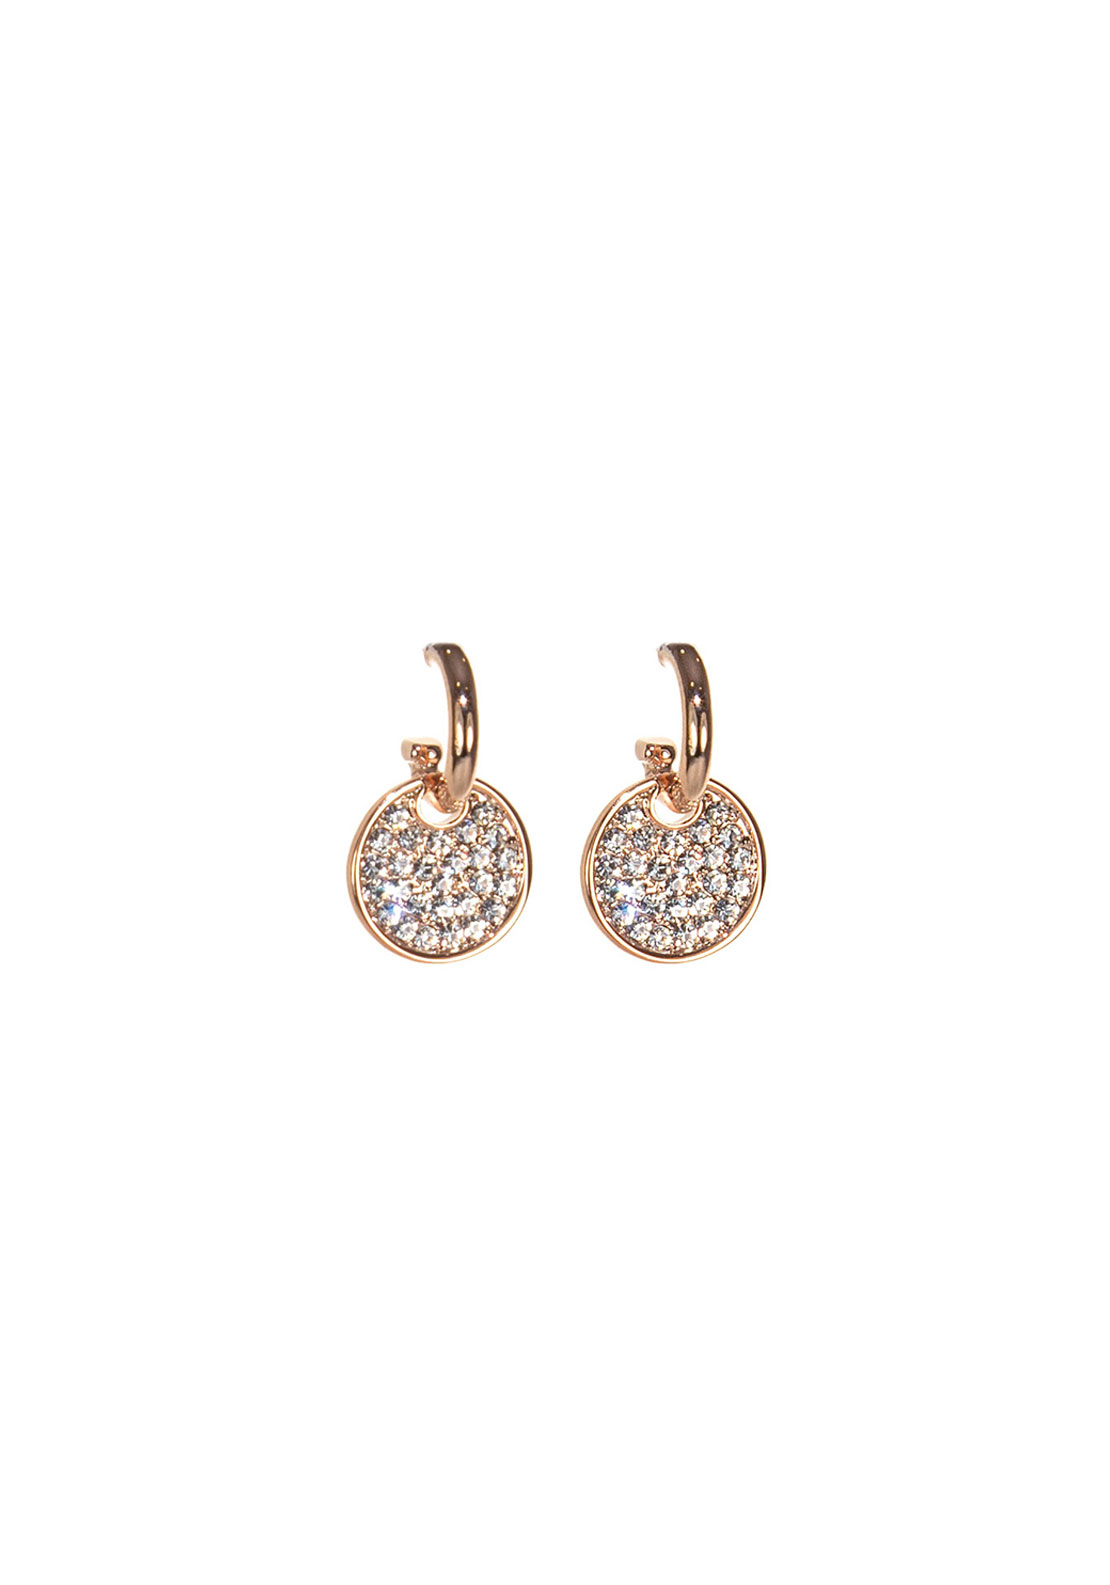 Absolute Jewellery Pave Drop Earrings